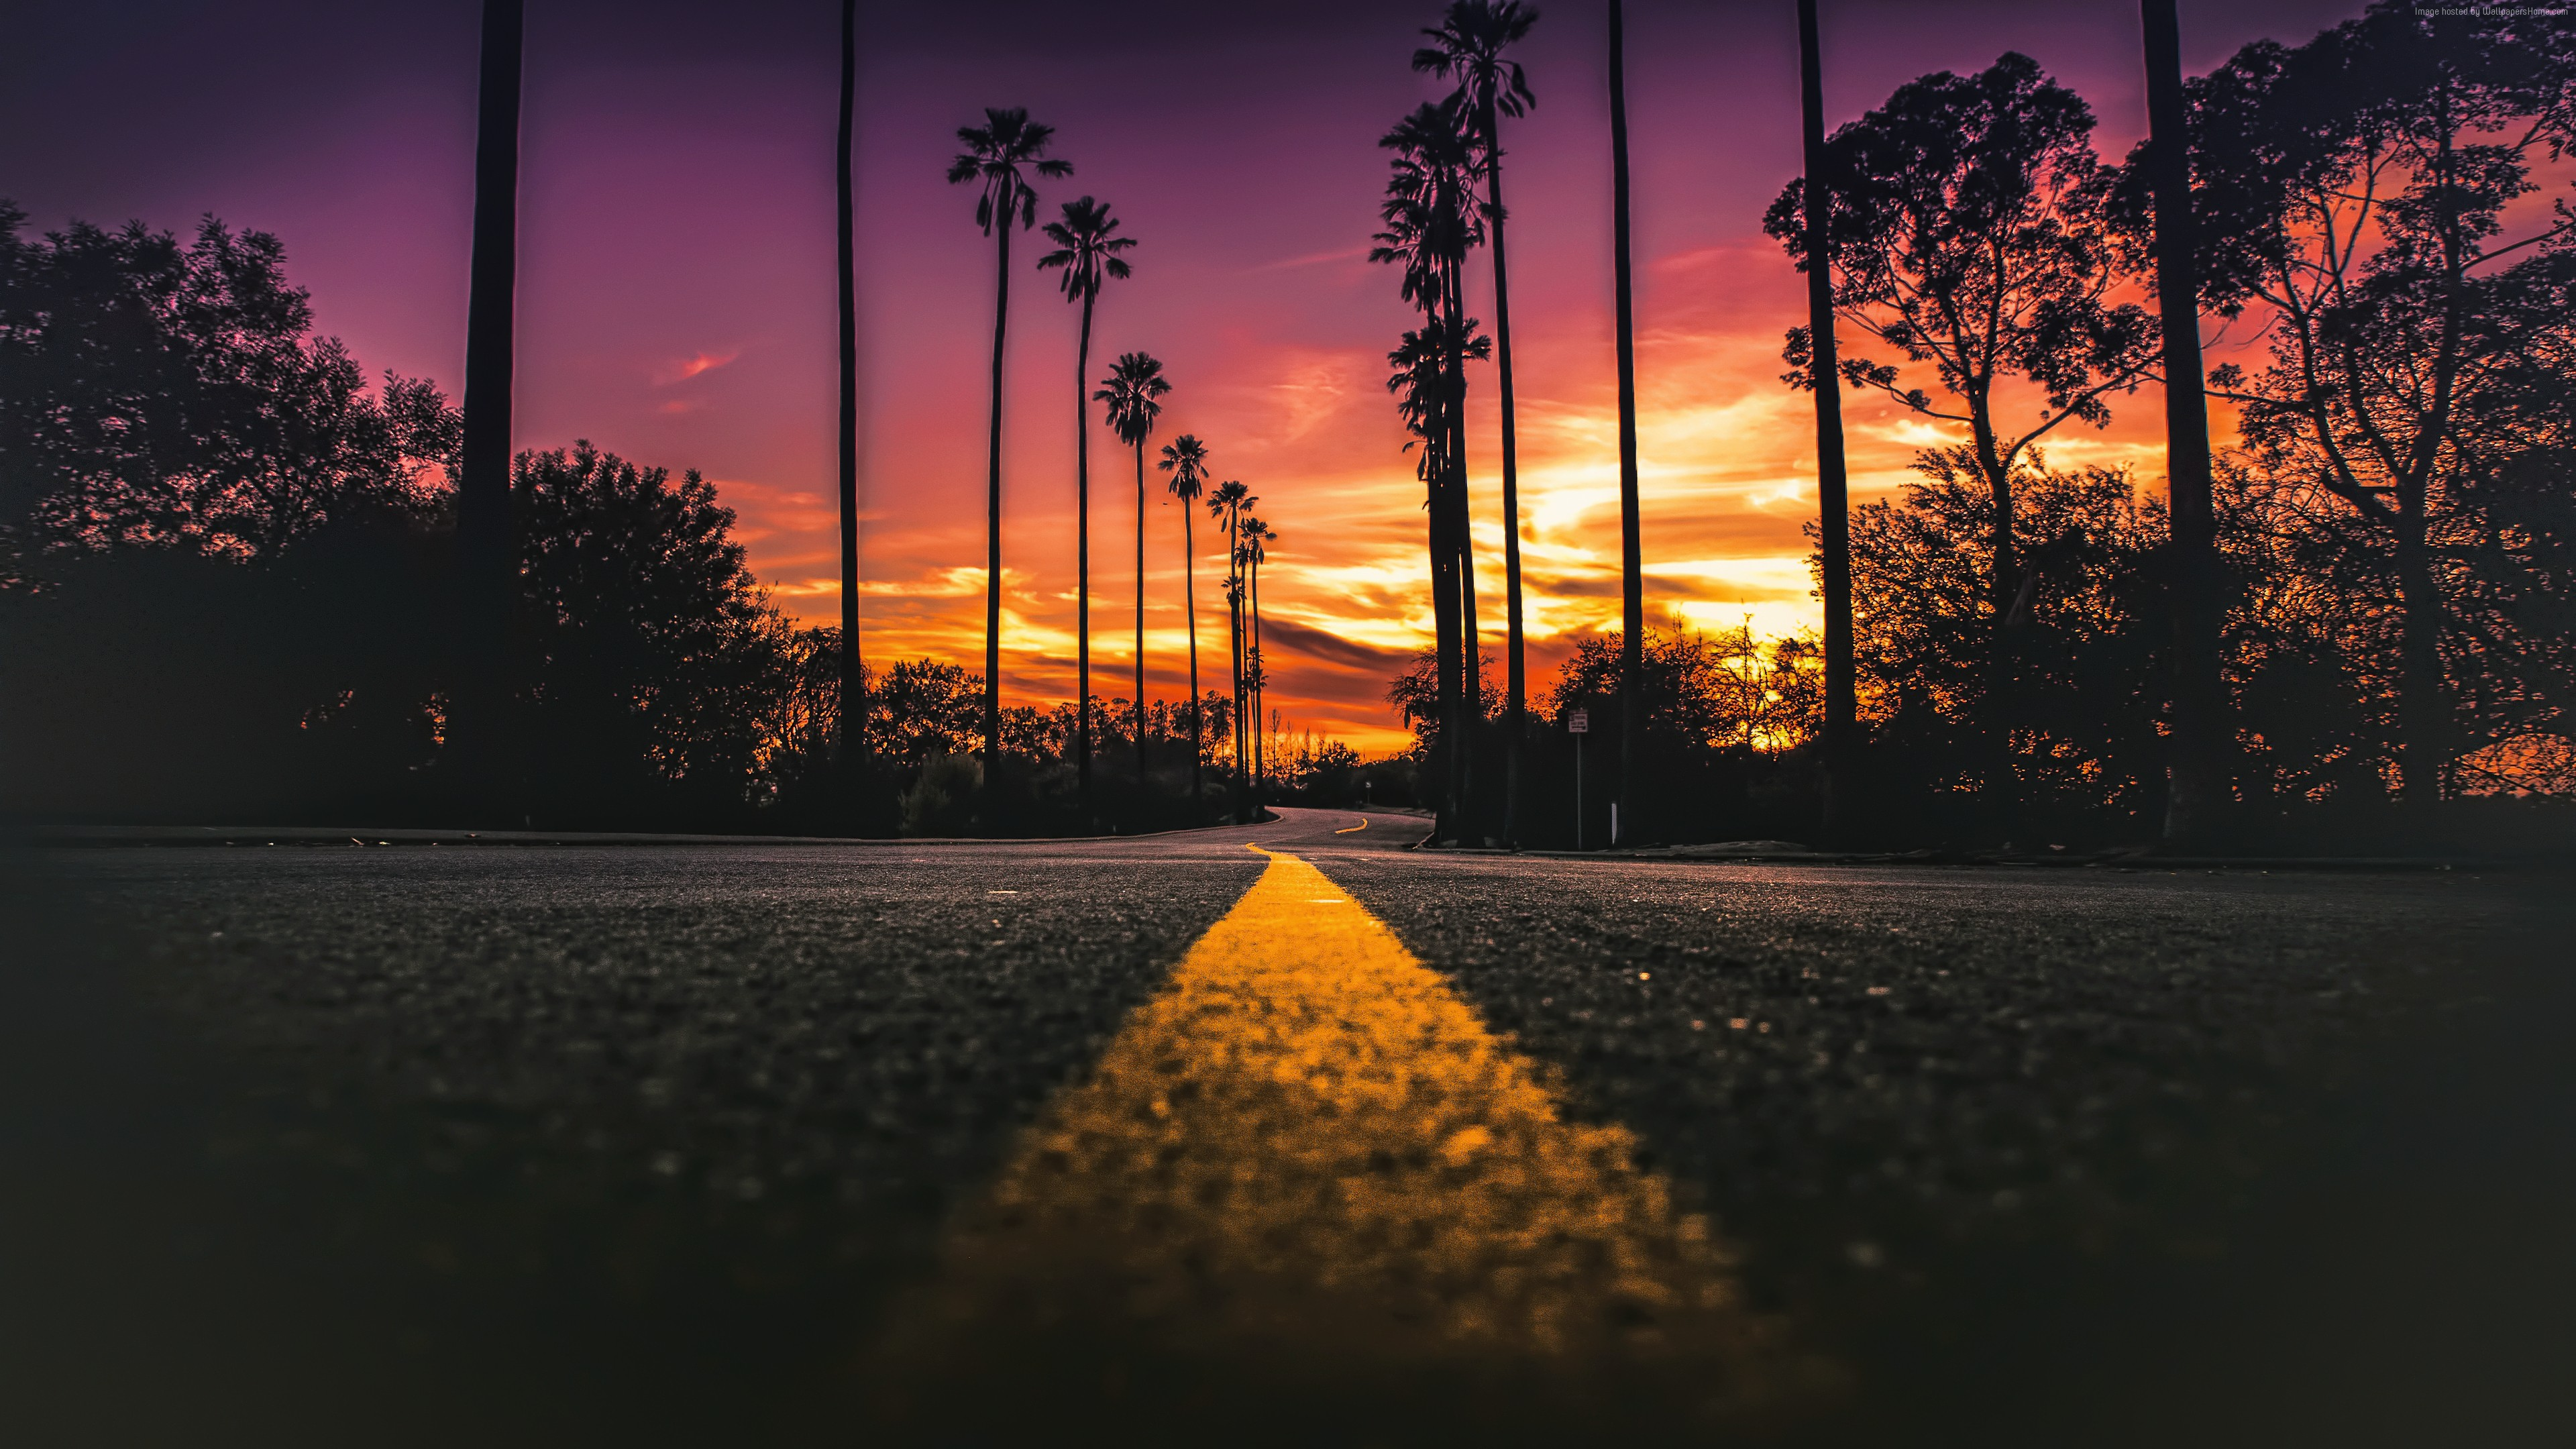 Stock Images Los Angeles, California, road, palms, sunset, 4K, Stock Images